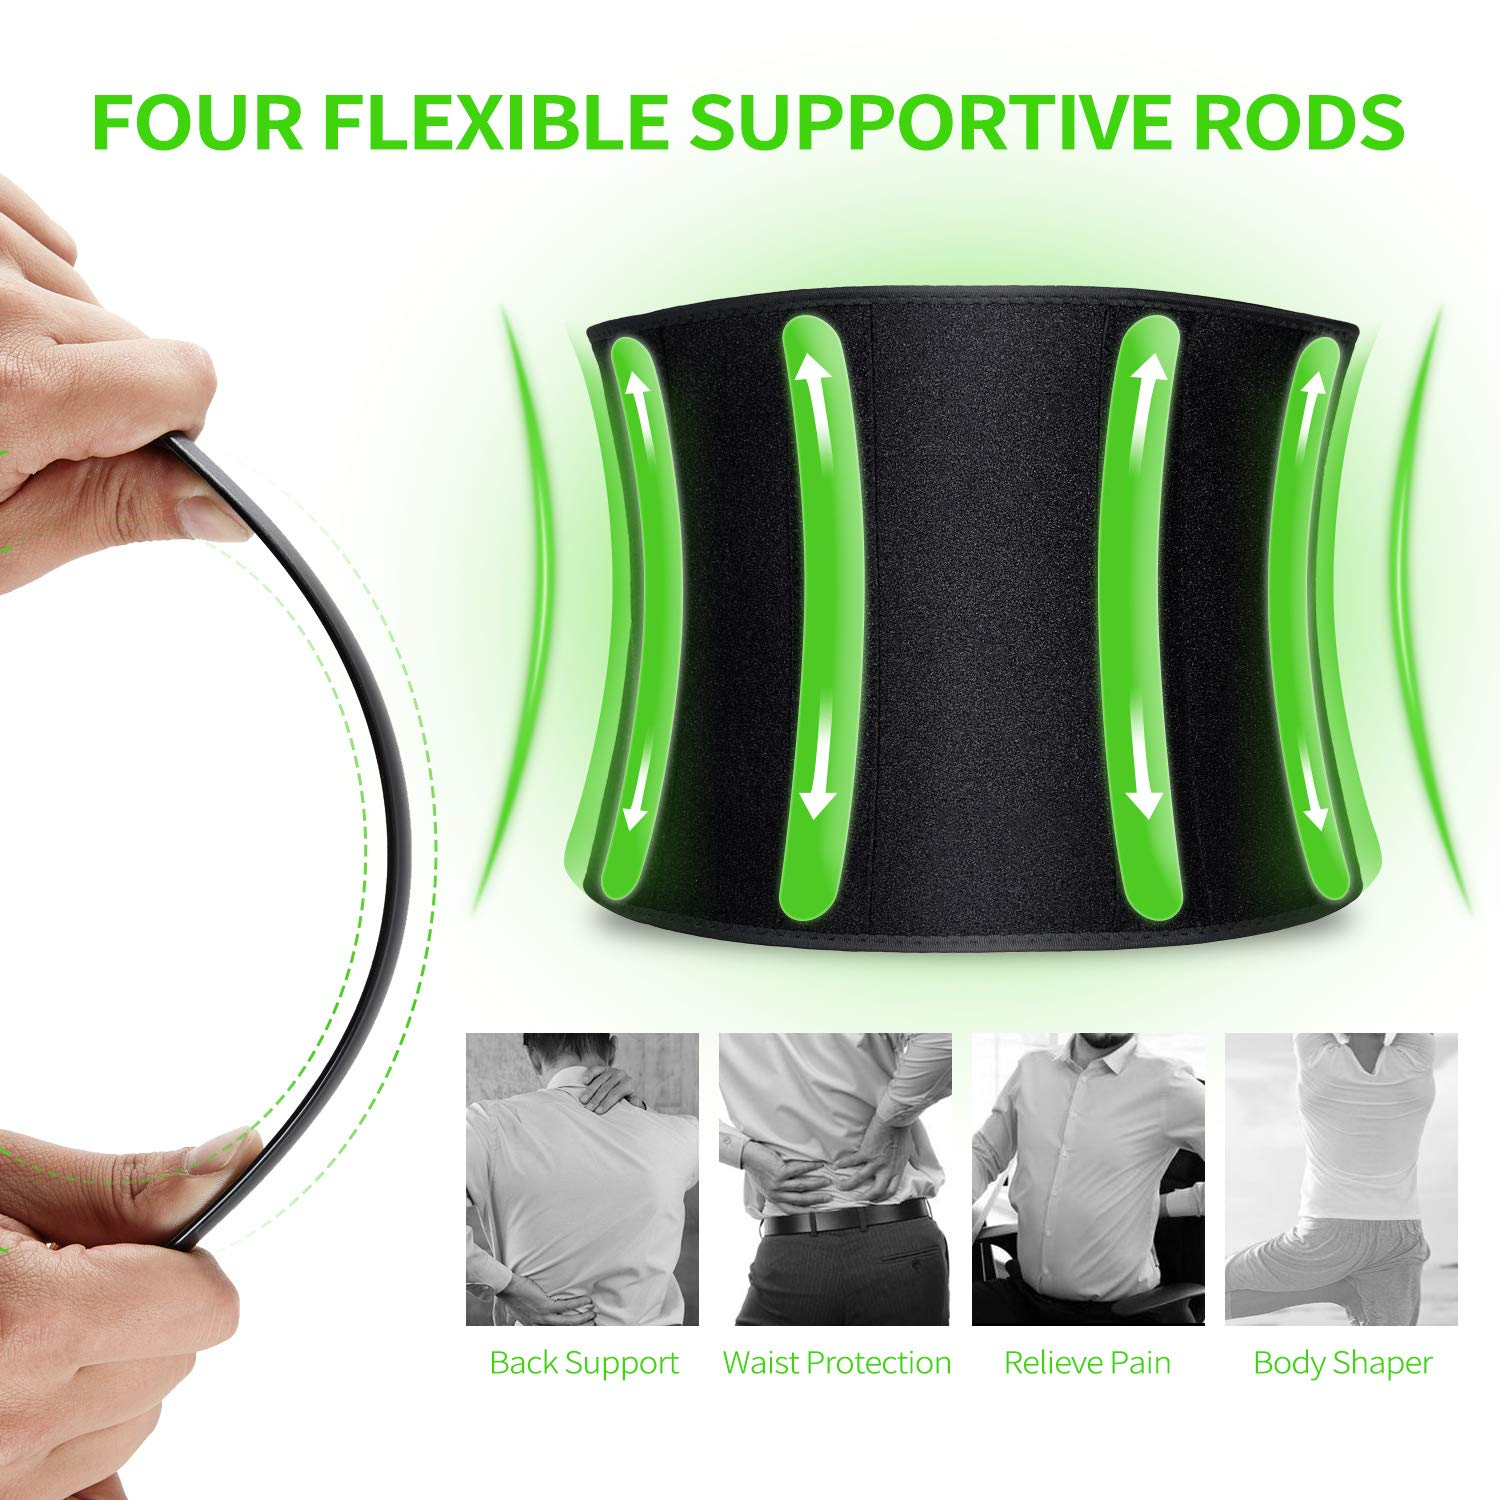 VOHUKO Waist Trimmer for Men,Widening Sweat Belt for Weight Loss,Improving Material Waist Trainer with Flexible Back Support for Fitness